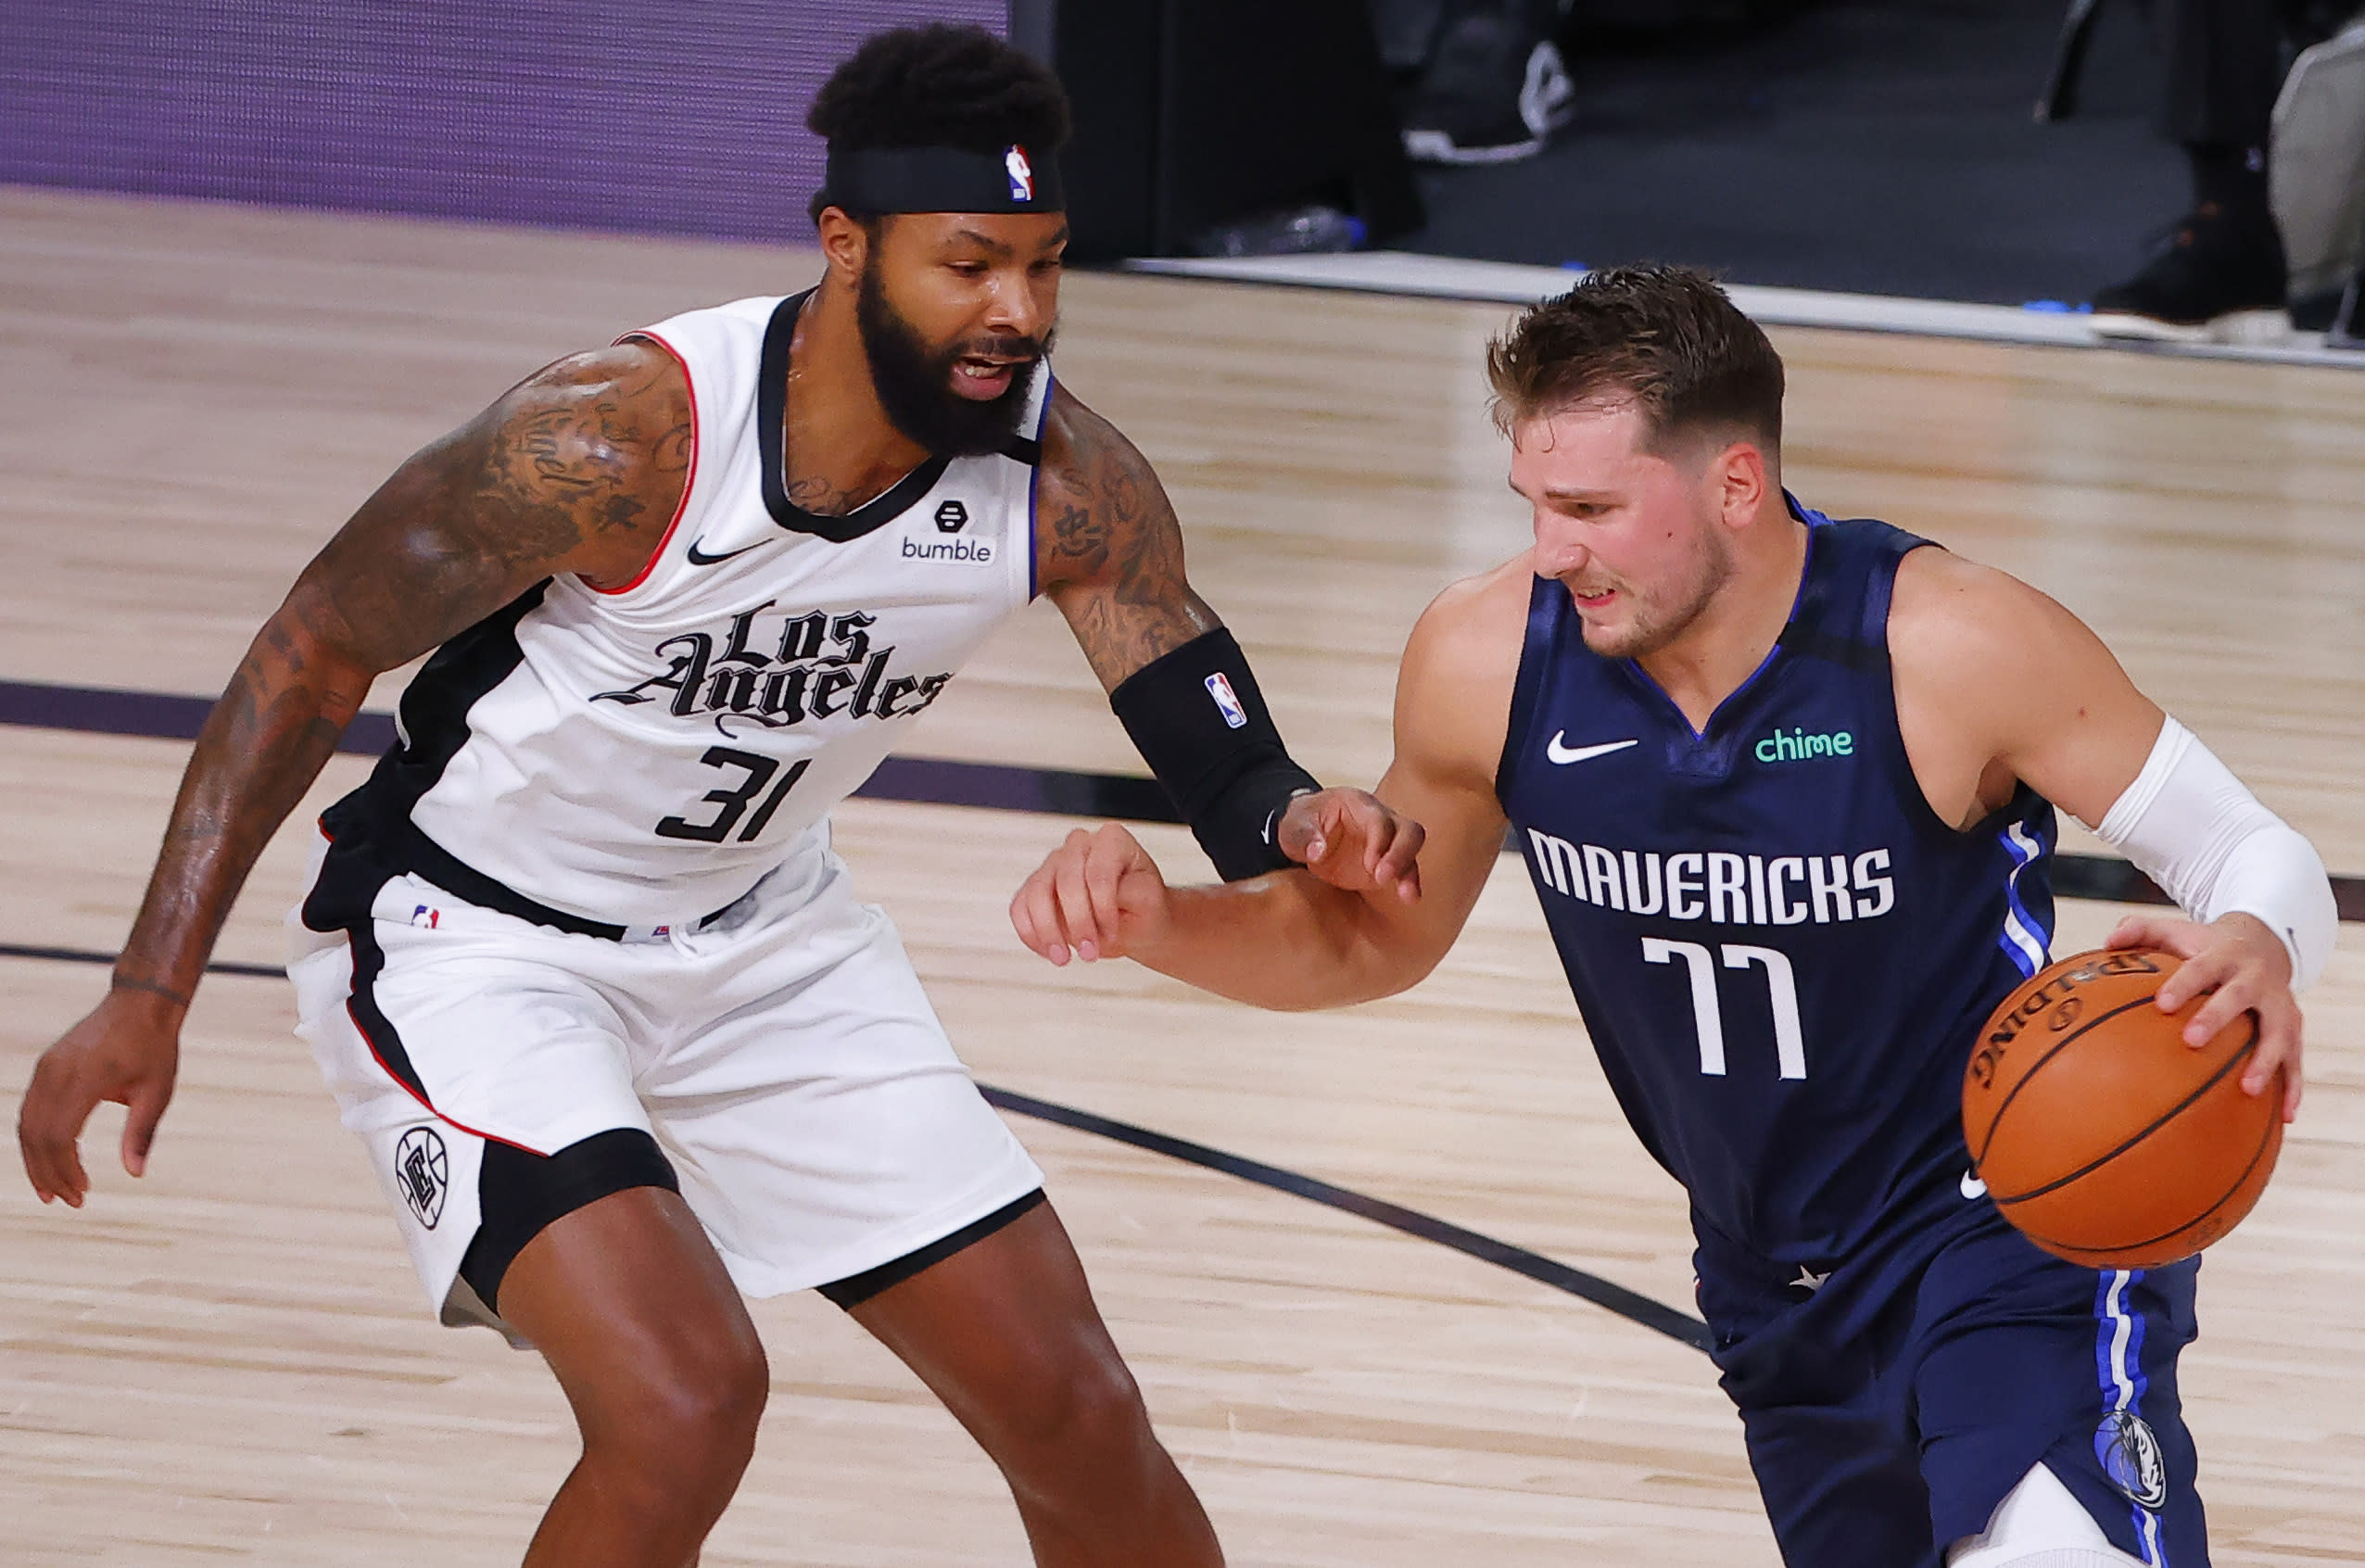 Dallas Mavericks' Luka Doncic (77) drives against Los Angeles Clippers' Marcus Morris Sr. (31) during the first quarter of Game 4 of an NBA basketball first-round playoff series, Sunday, Aug. 23, 2020, in Lake Buena Vista, Fla. (Kevin C. Cox/Pool Photo via AP)